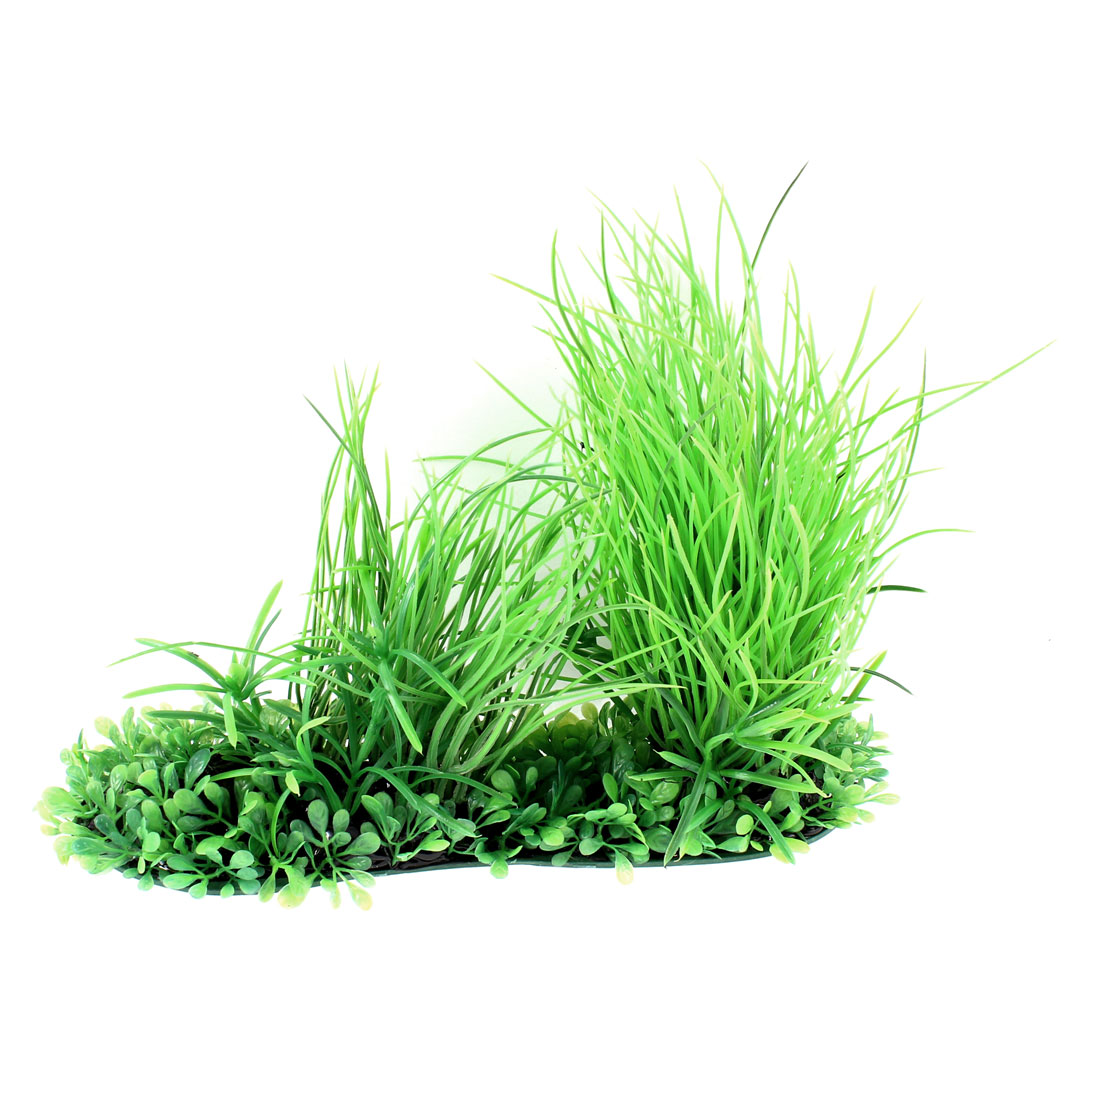 20cm Height Green Plastic Artificial Aquarium Plant Underwater Grass Ornament